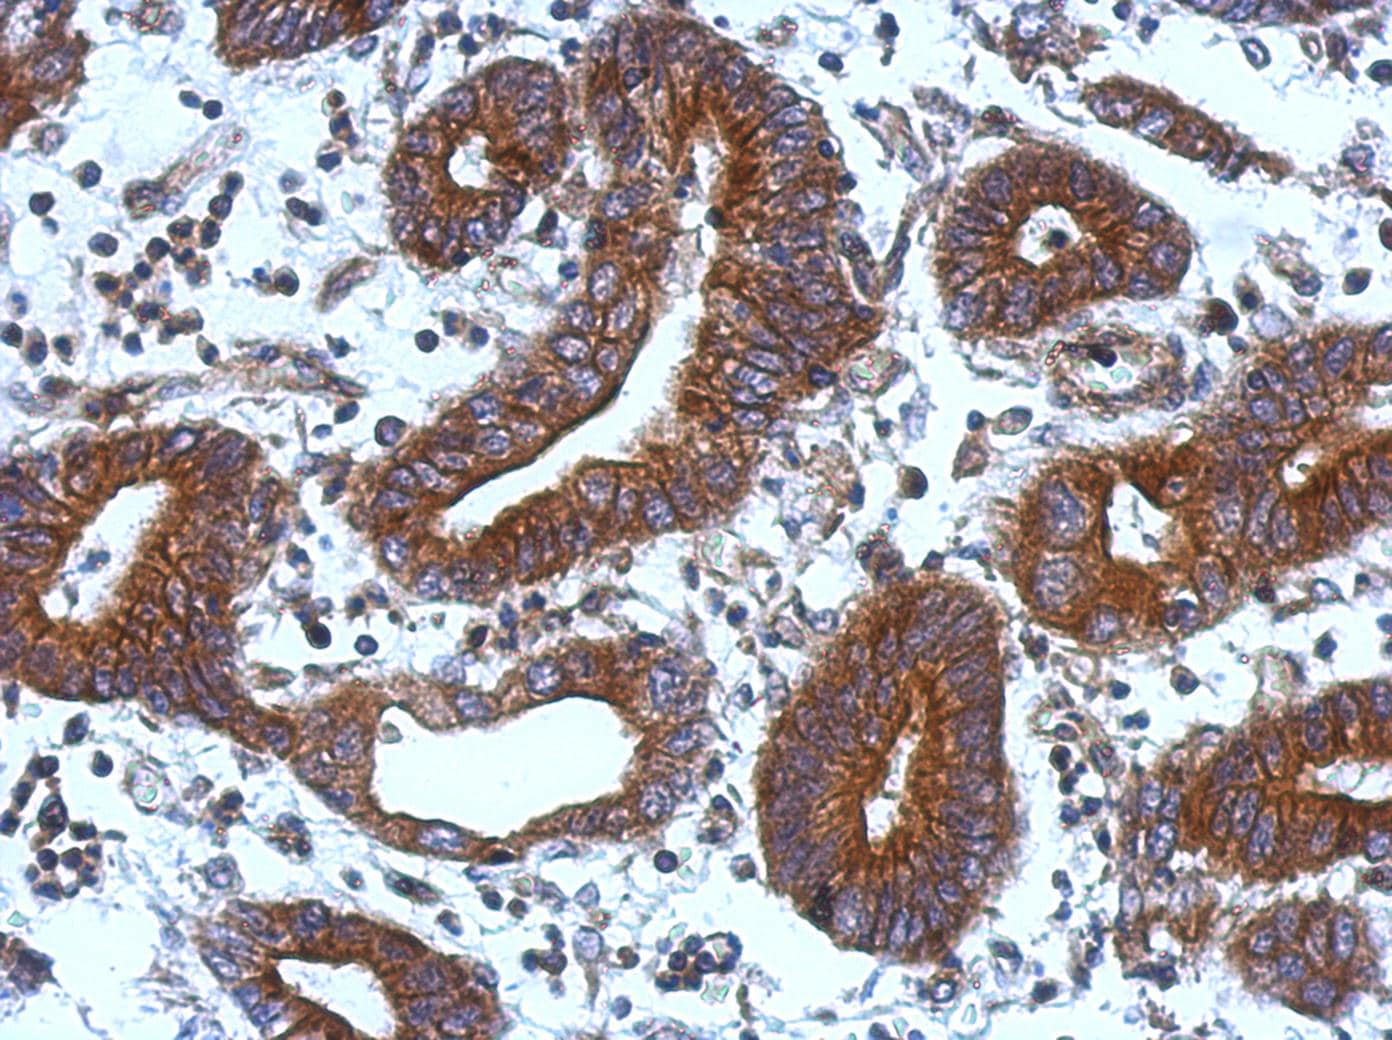 Immunohistochemistry (Formalin/PFA-fixed paraffin-embedded sections) - Anti-TIE1 antibody (ab111547)